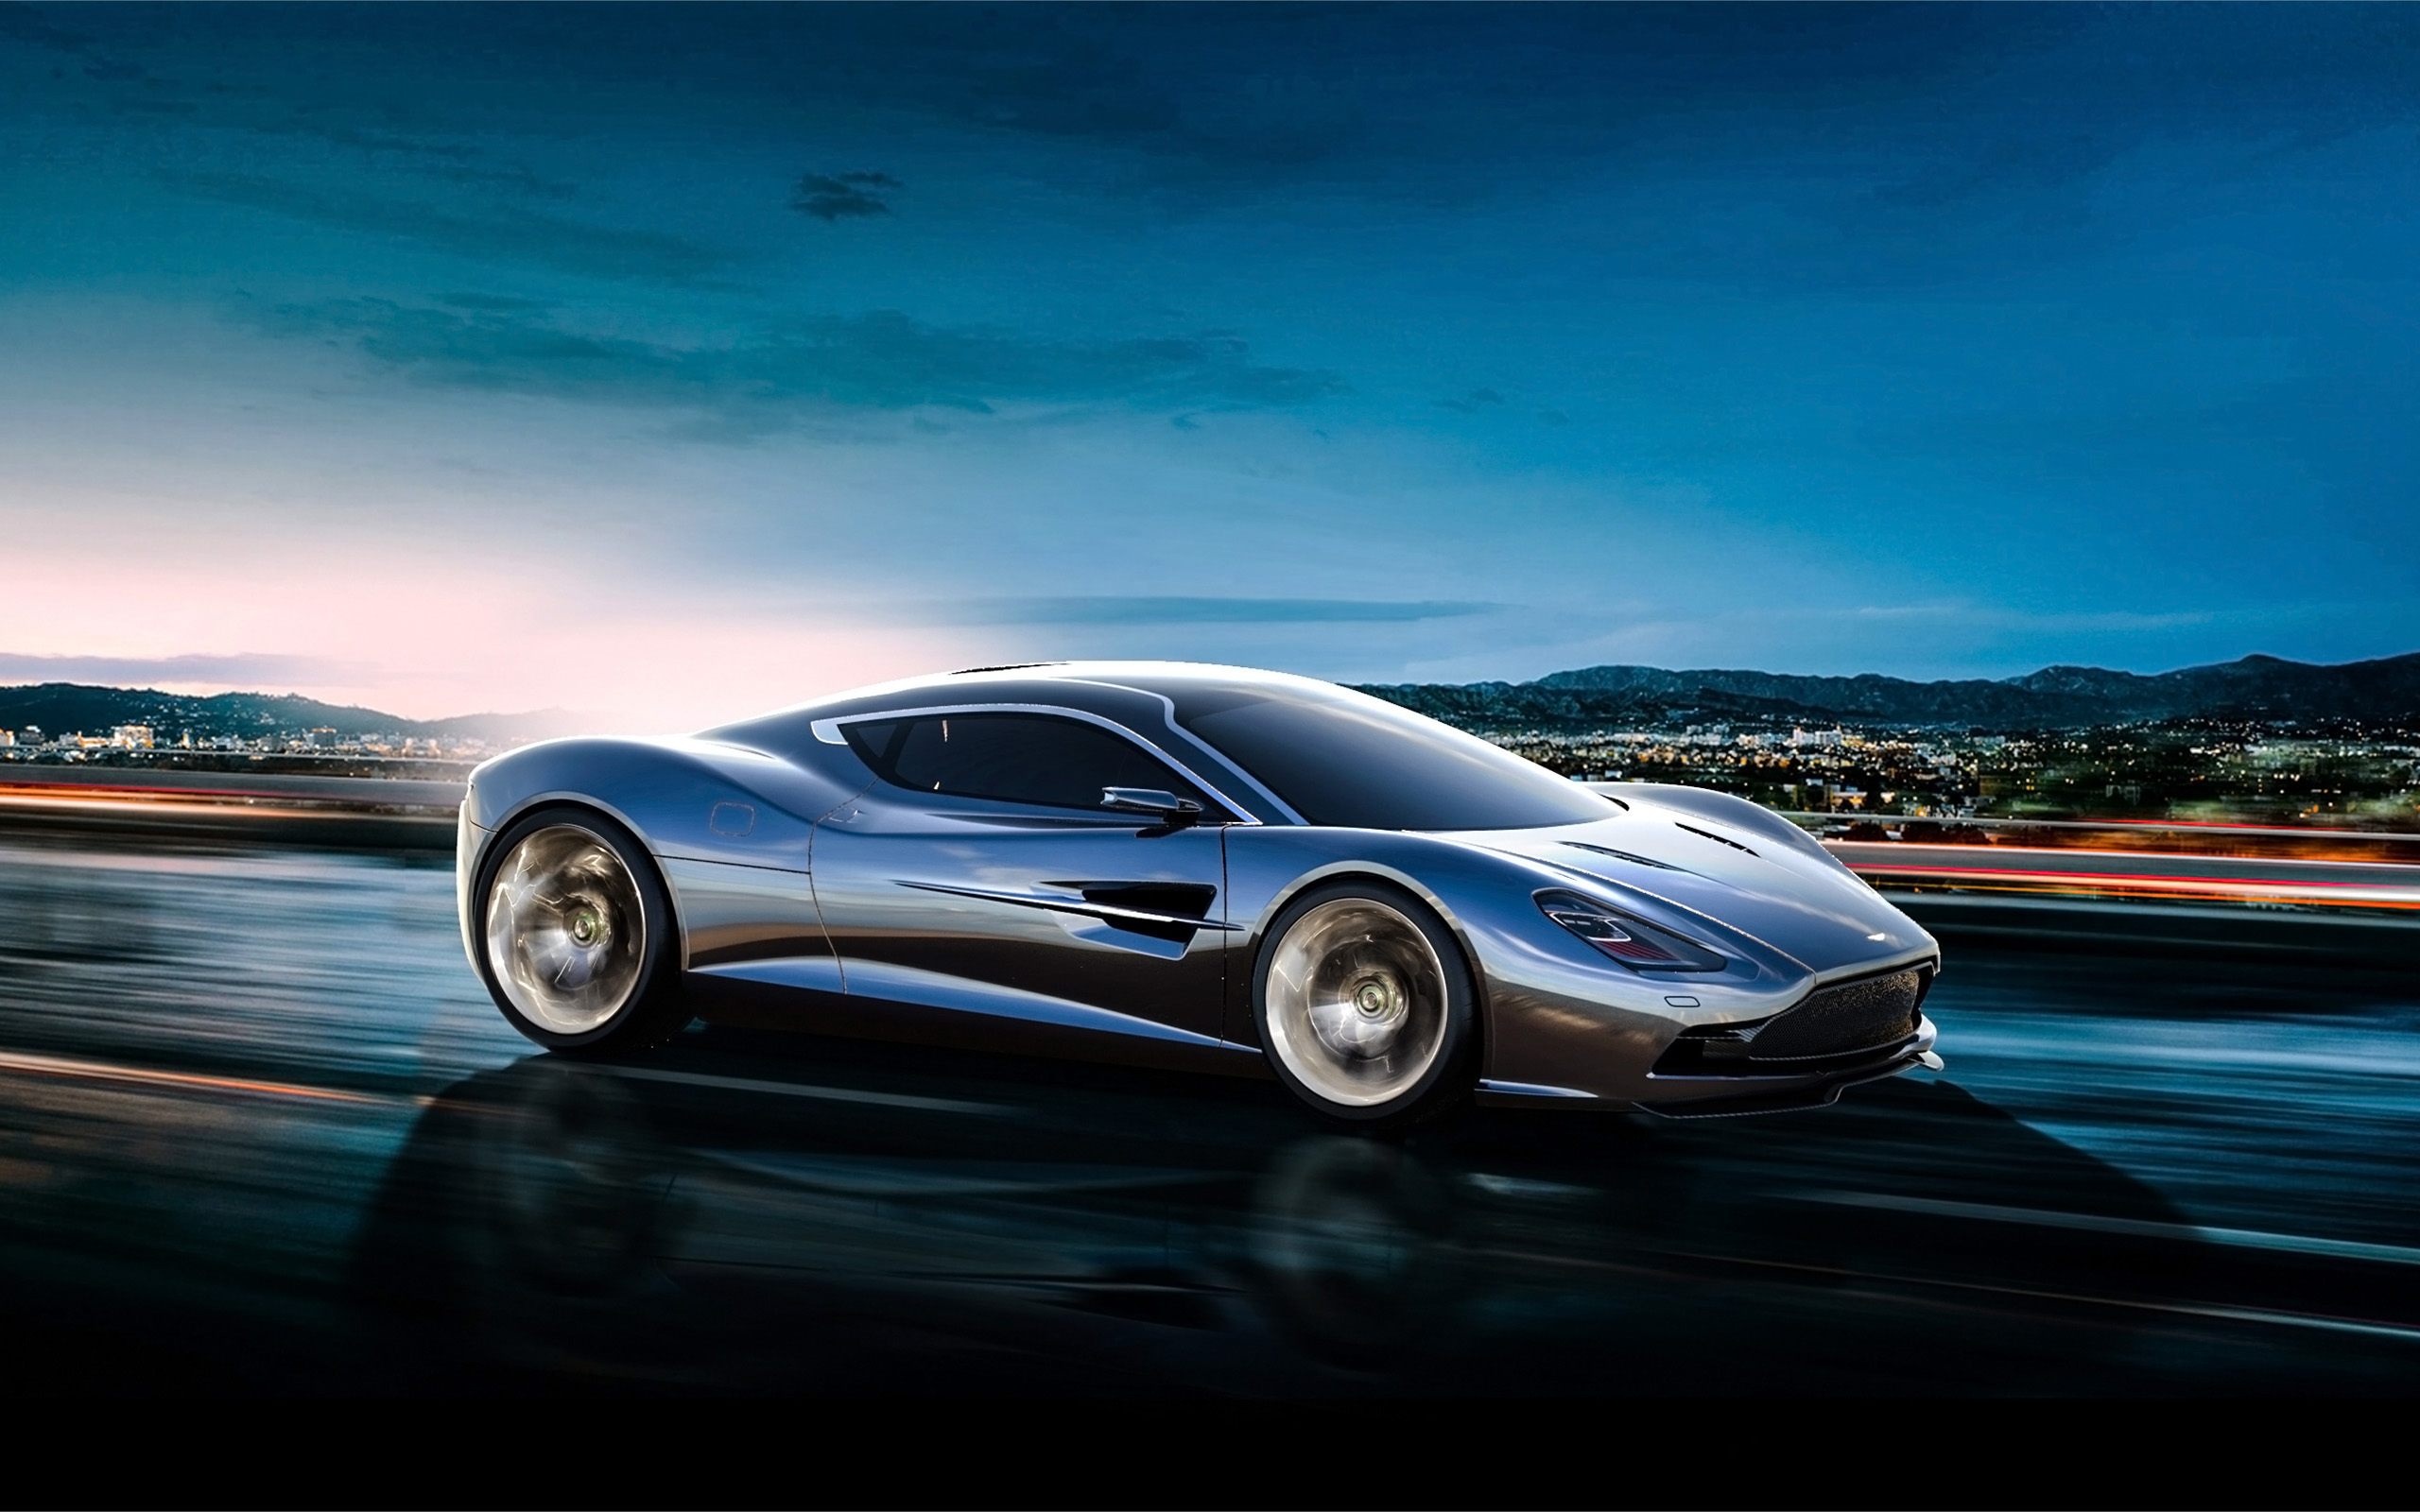 2013 Aston Martin DBC Concept 3 Wallpaper HD Car Wallpapers 2560x1600